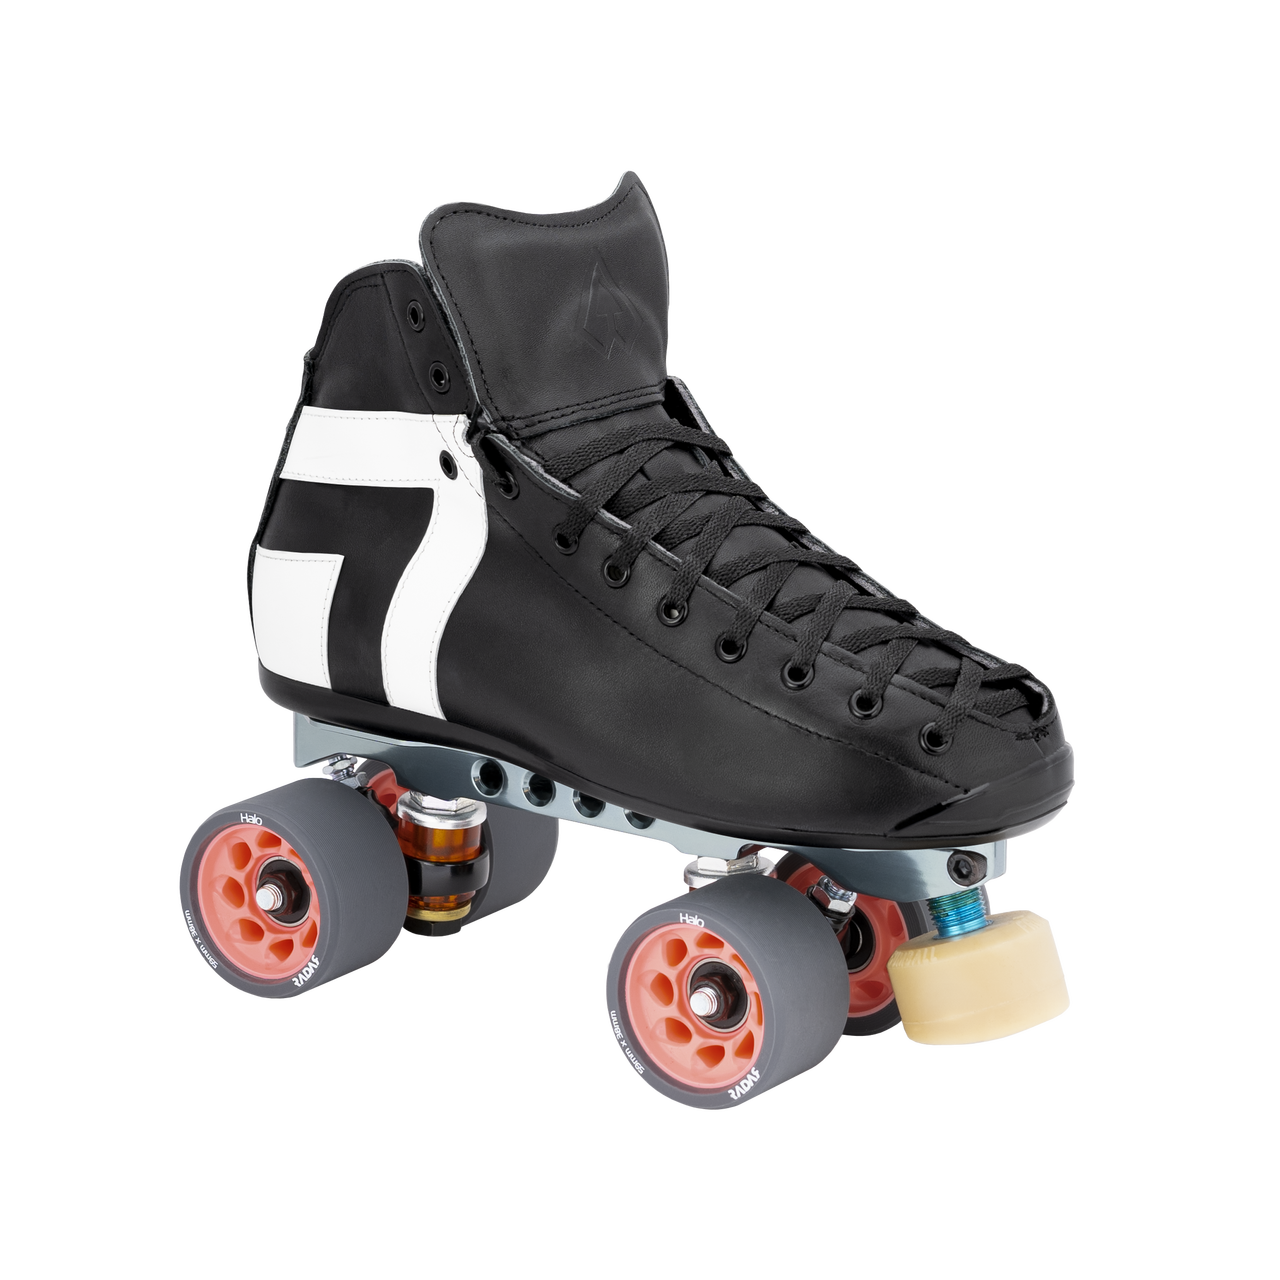 Antik AR2 Skate with Reactor Pro plate